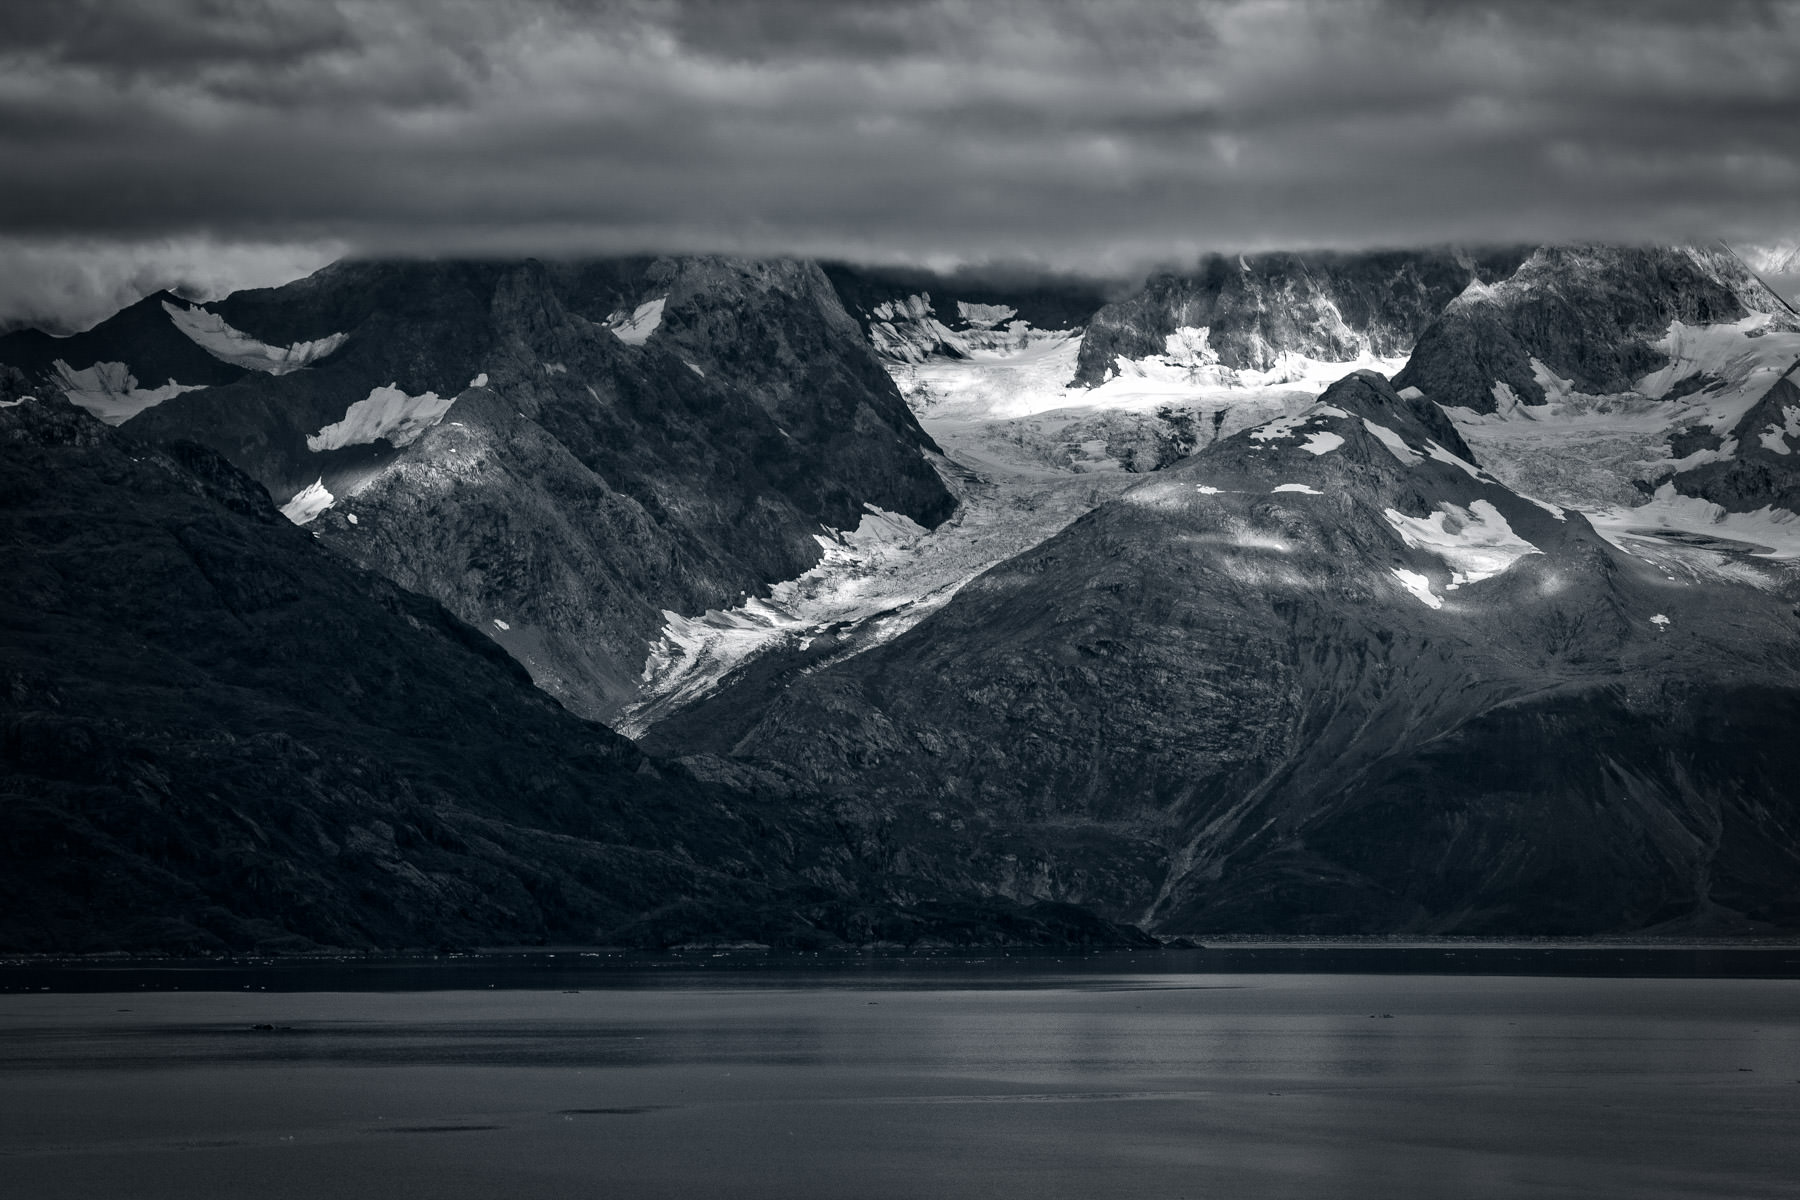 Mountains along the shoreline of Glacier Bay rise into the early morning clouds at Glacier Bay National Park, Alaska.